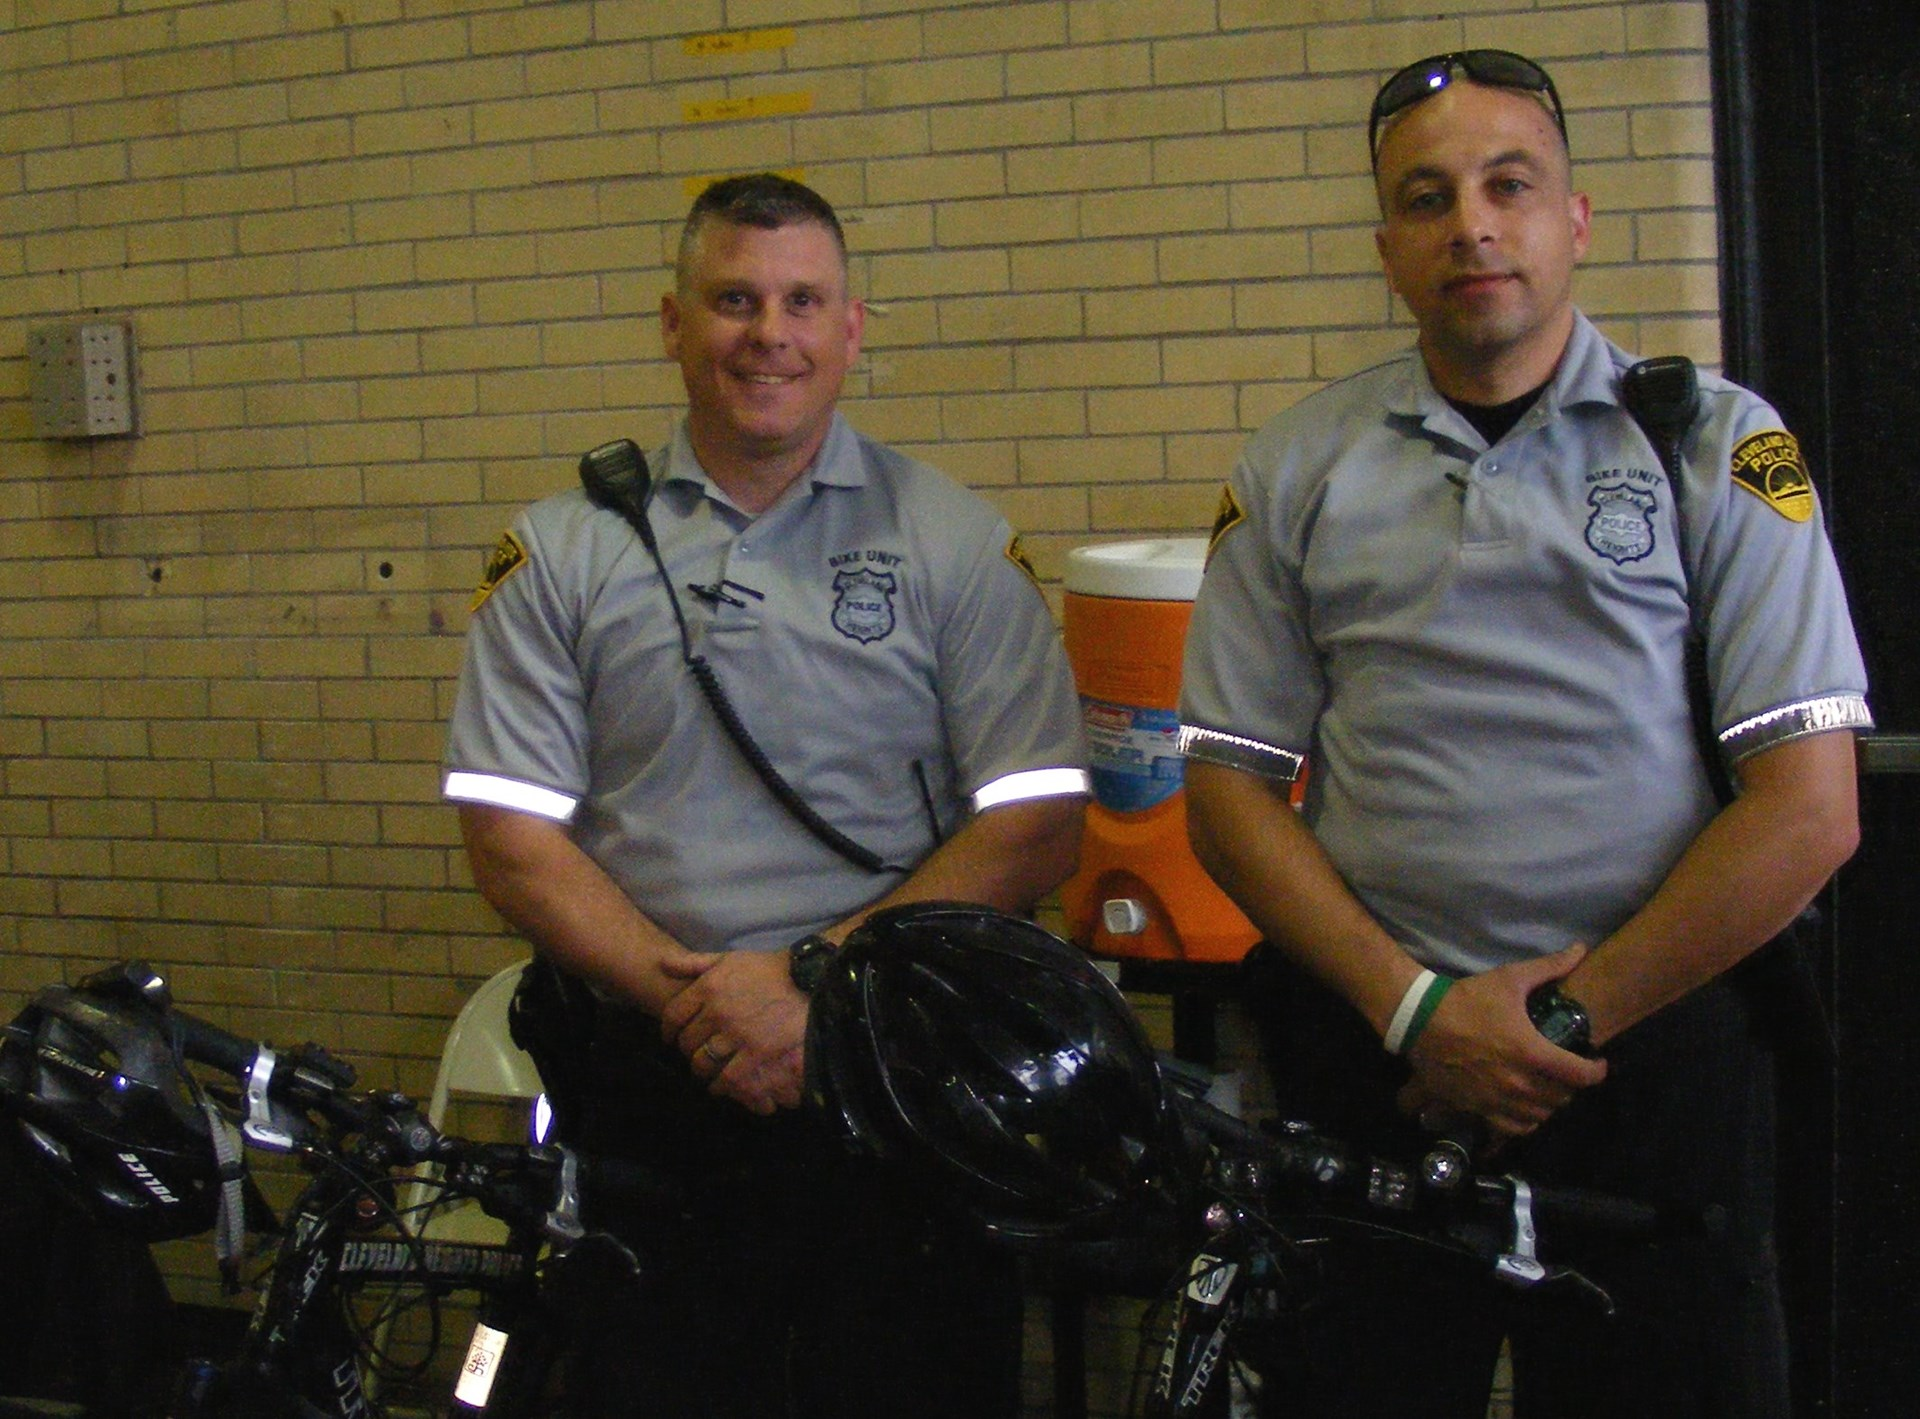 Cleveland Heights Bike Officers